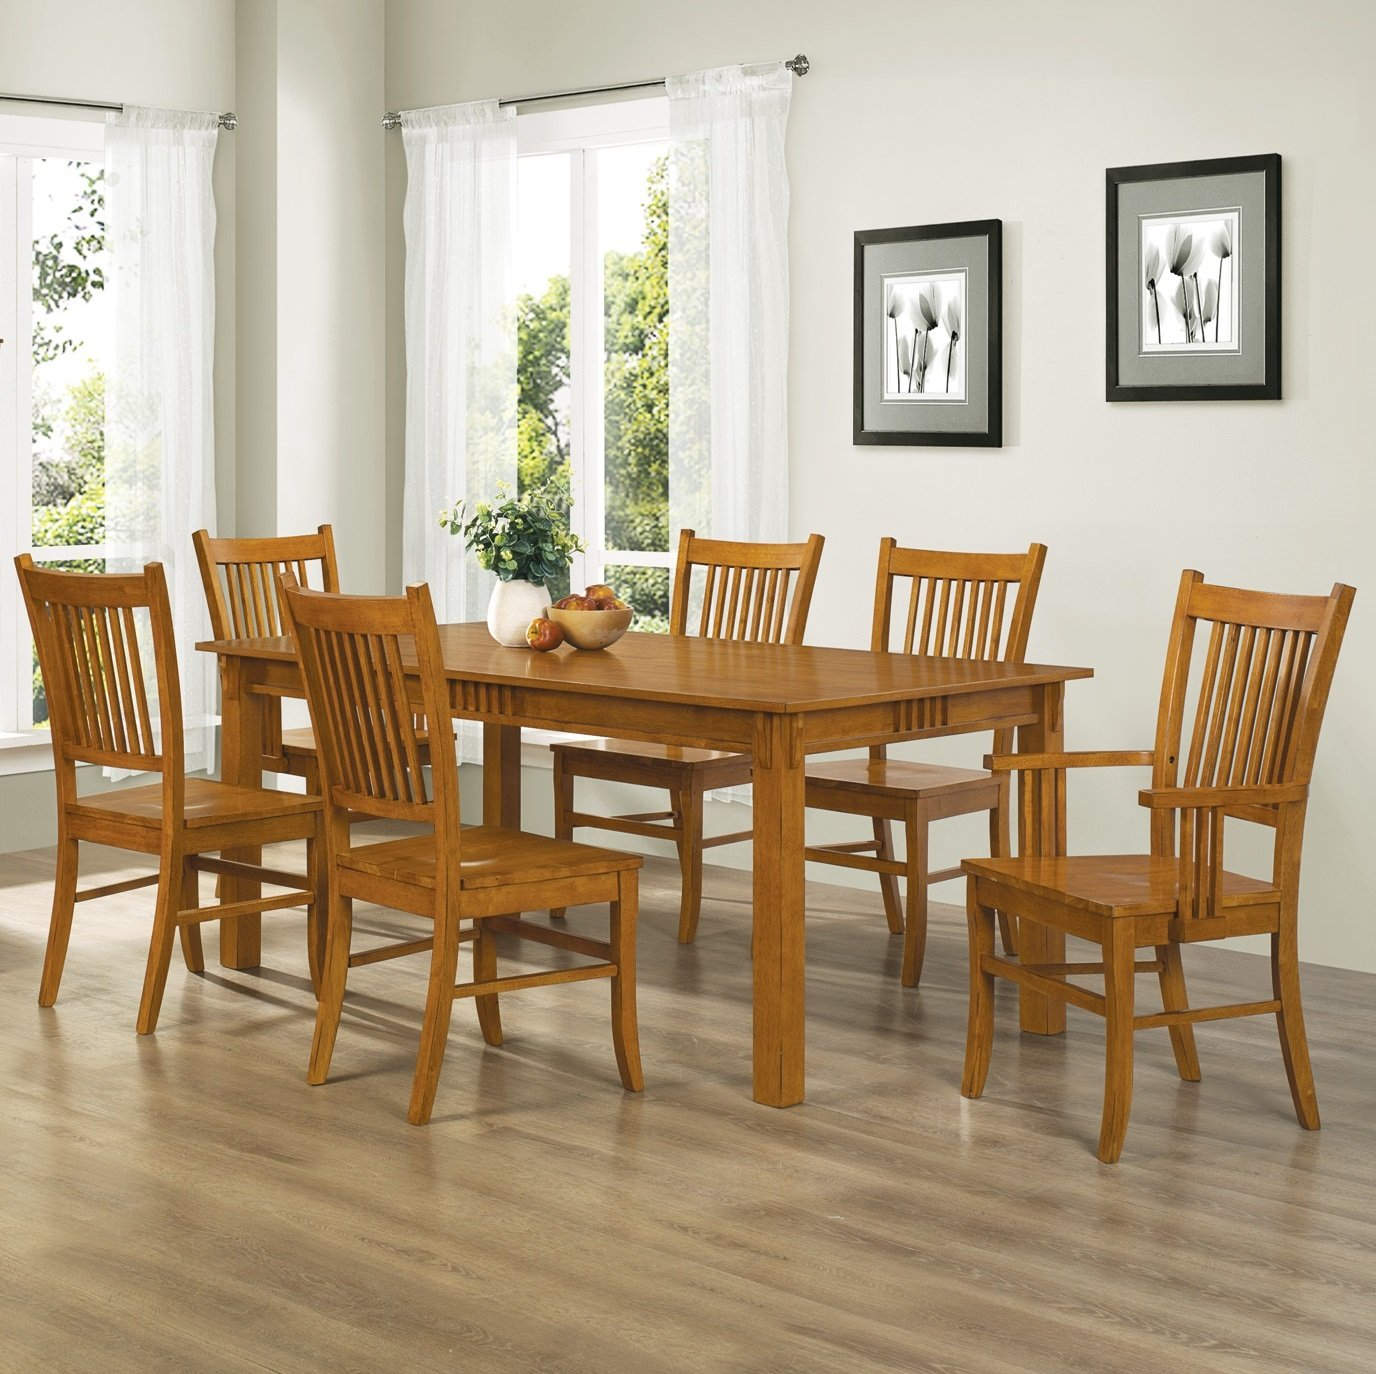 Amazon.com - Coaster Home Furnishings 7-Piece Mission Style Solid Hardwood Dining  Table & Chairs Set - Table & Chair Sets